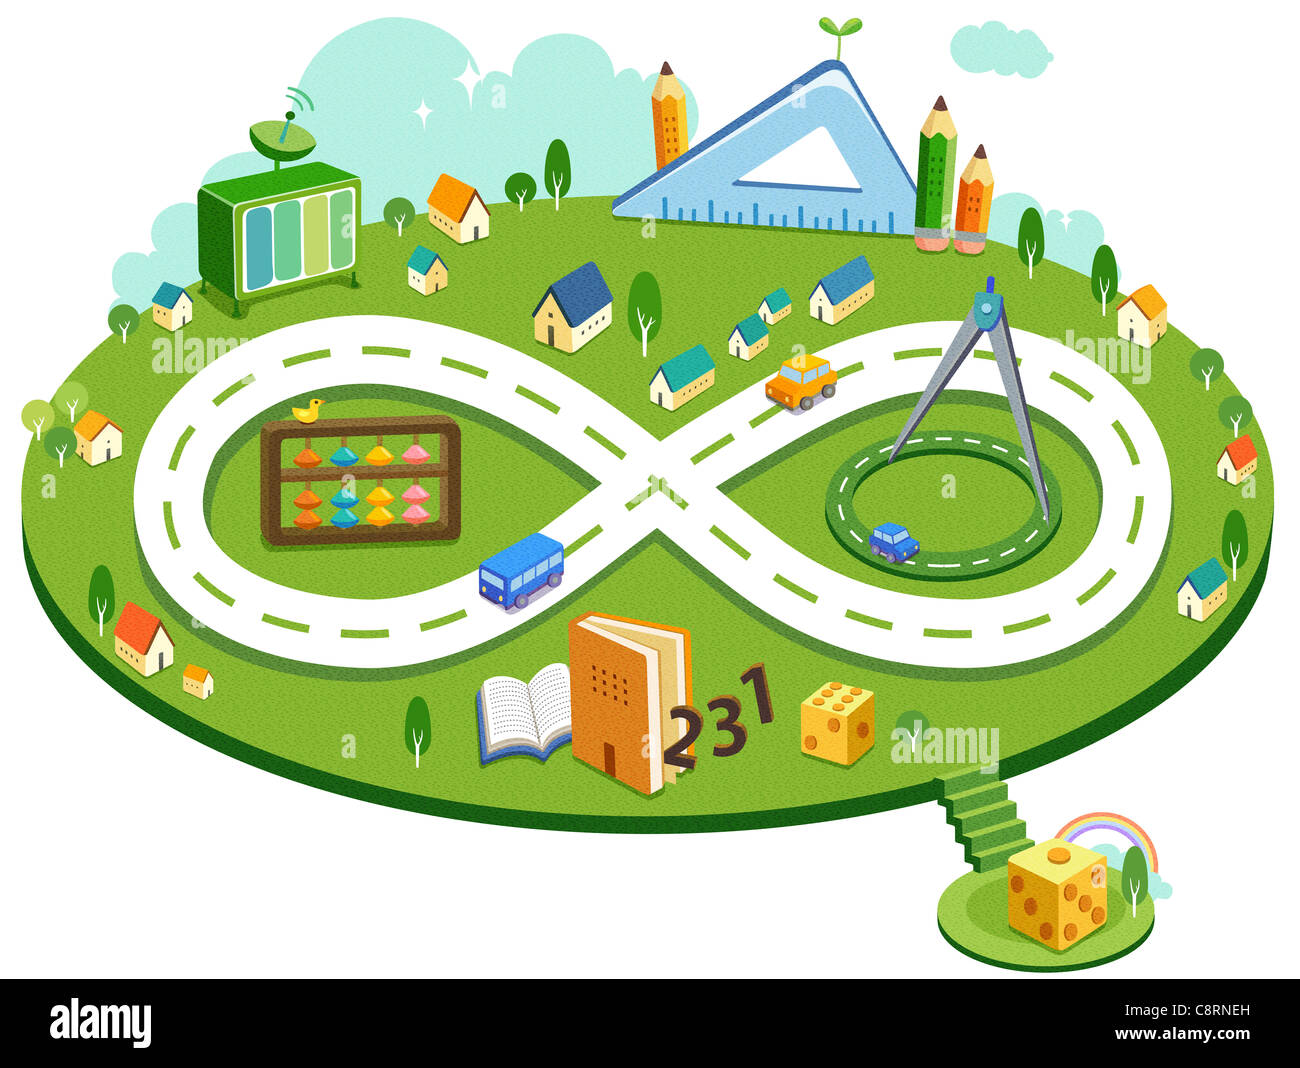 Educational Playground And Facility - Stock Image